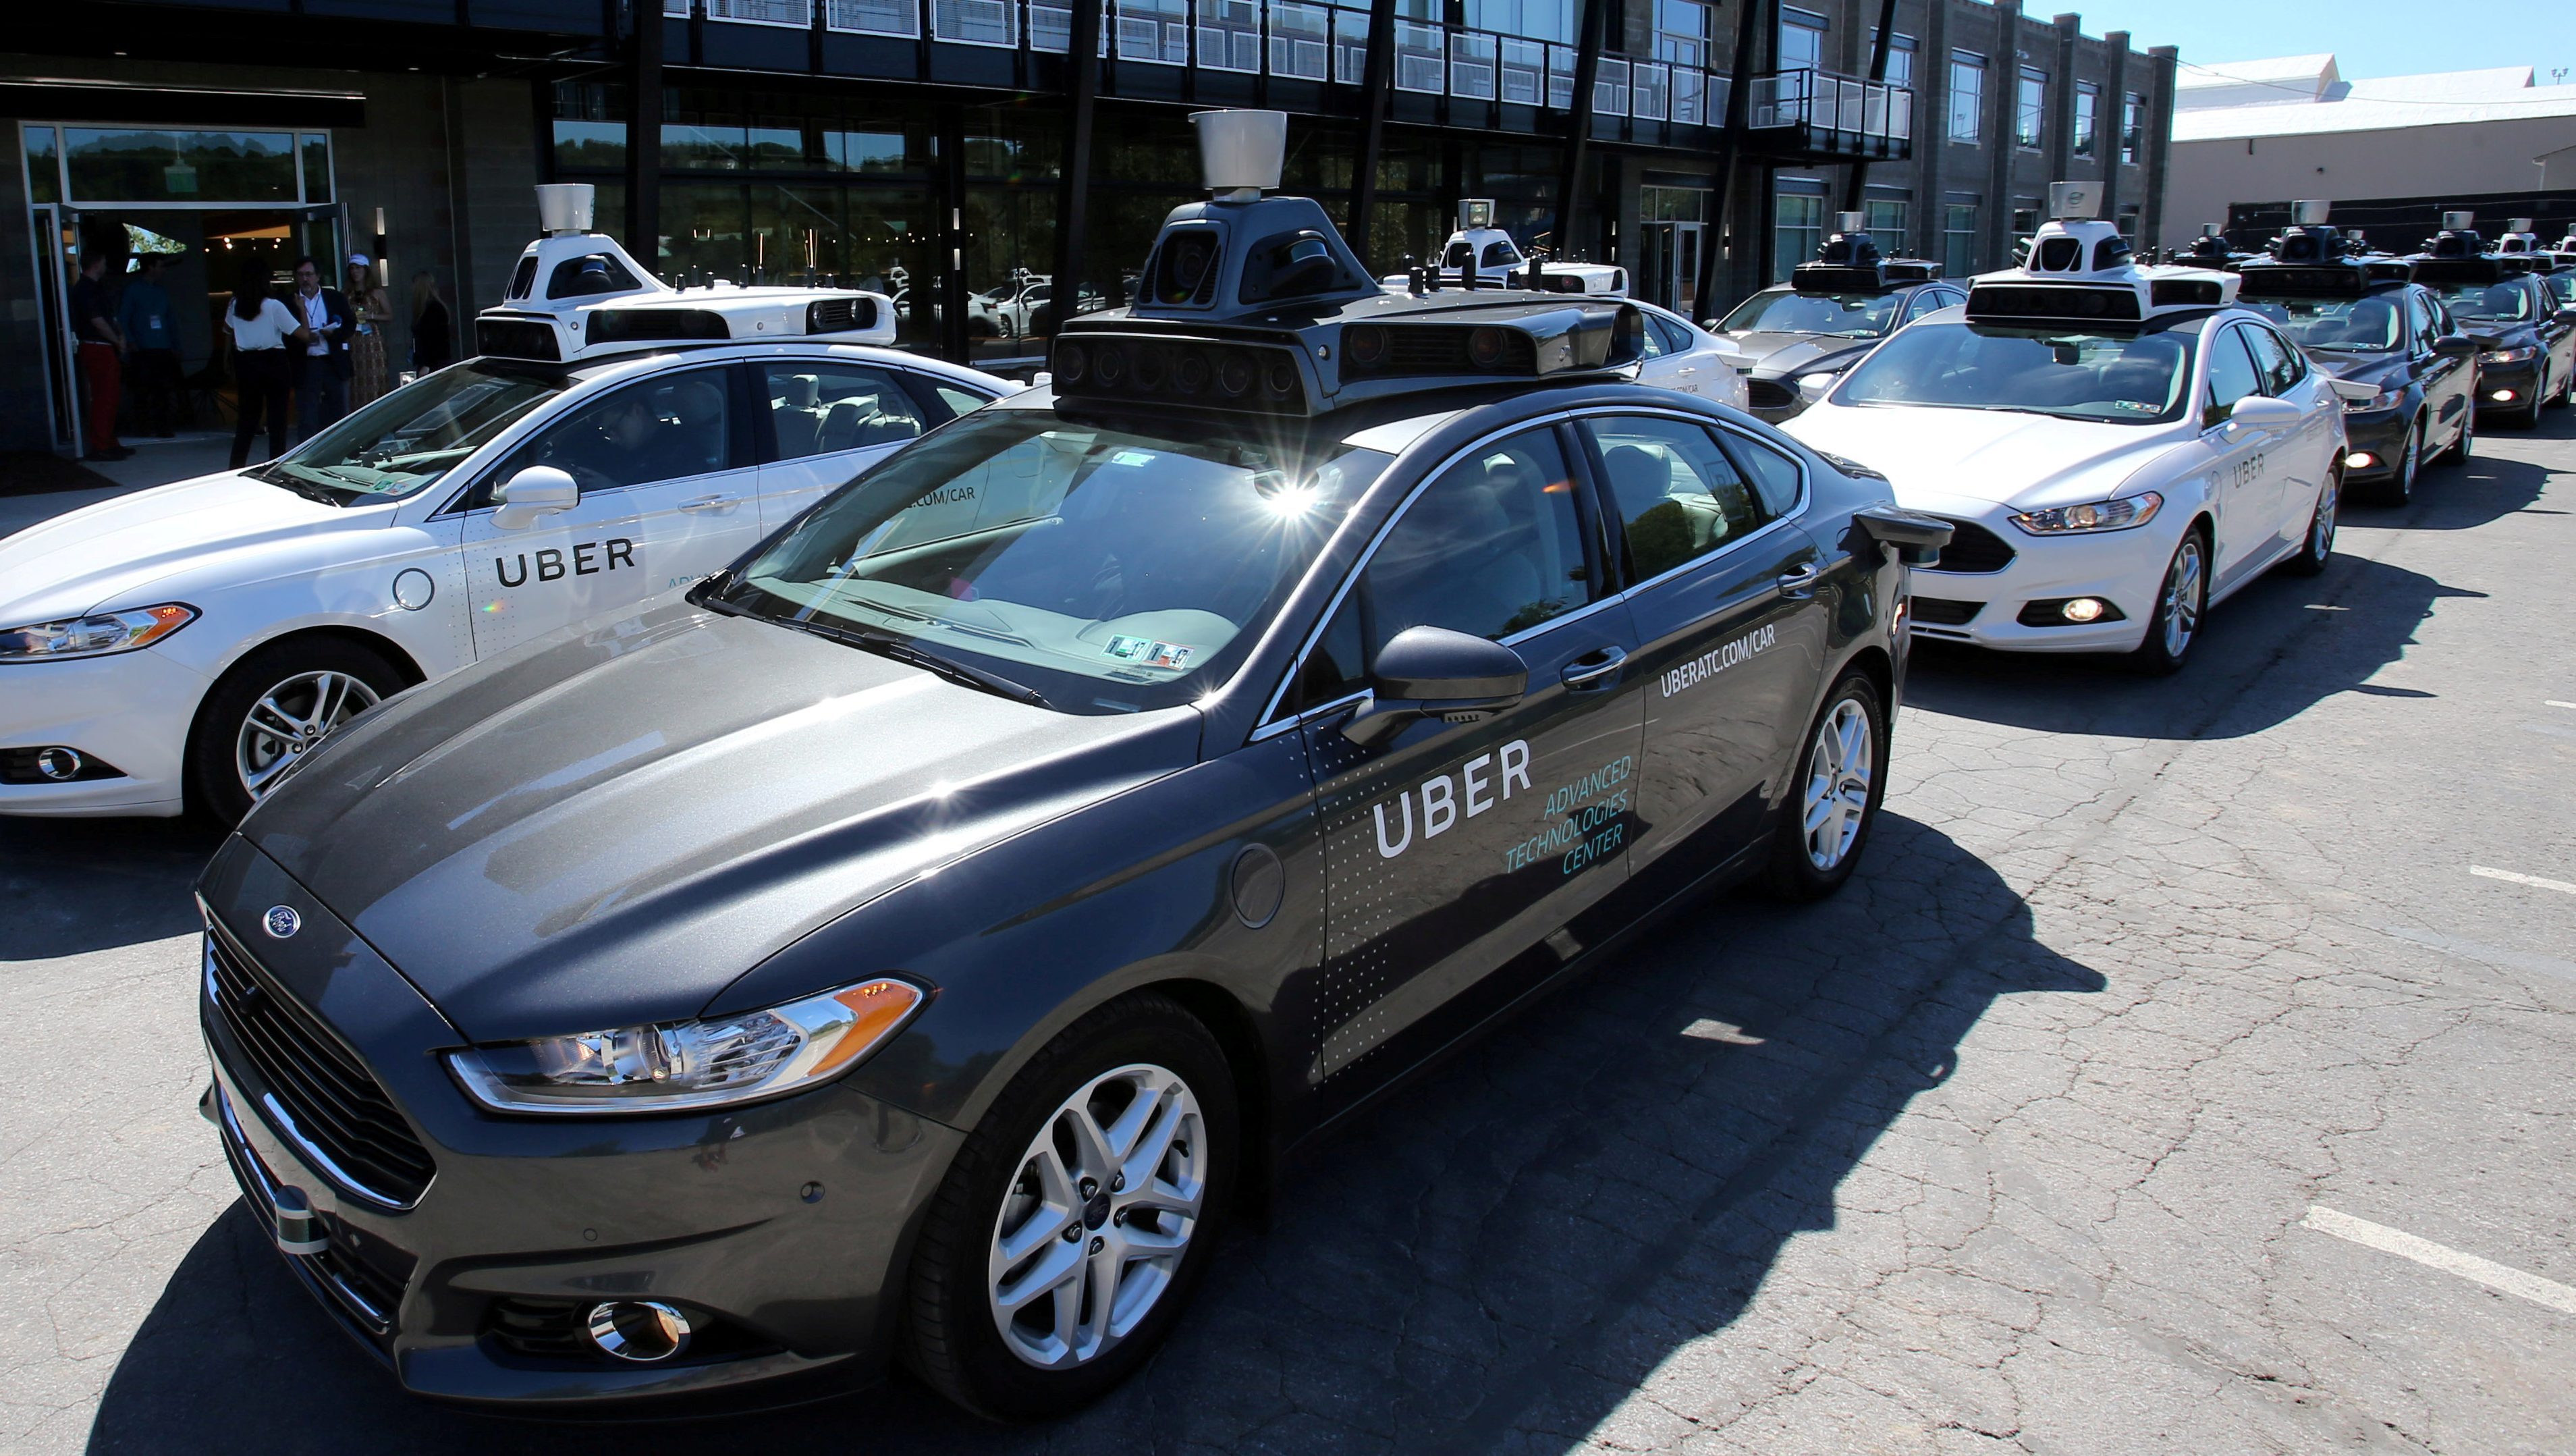 A fleet of Uber's Ford Fusion self driving cars are shown during a demonstration of self-driving automotive technology in Pittsburgh, U.S., September 13, 2016.     REUTERS/Aaron Josefczyk/File Photo - RTSUVJY